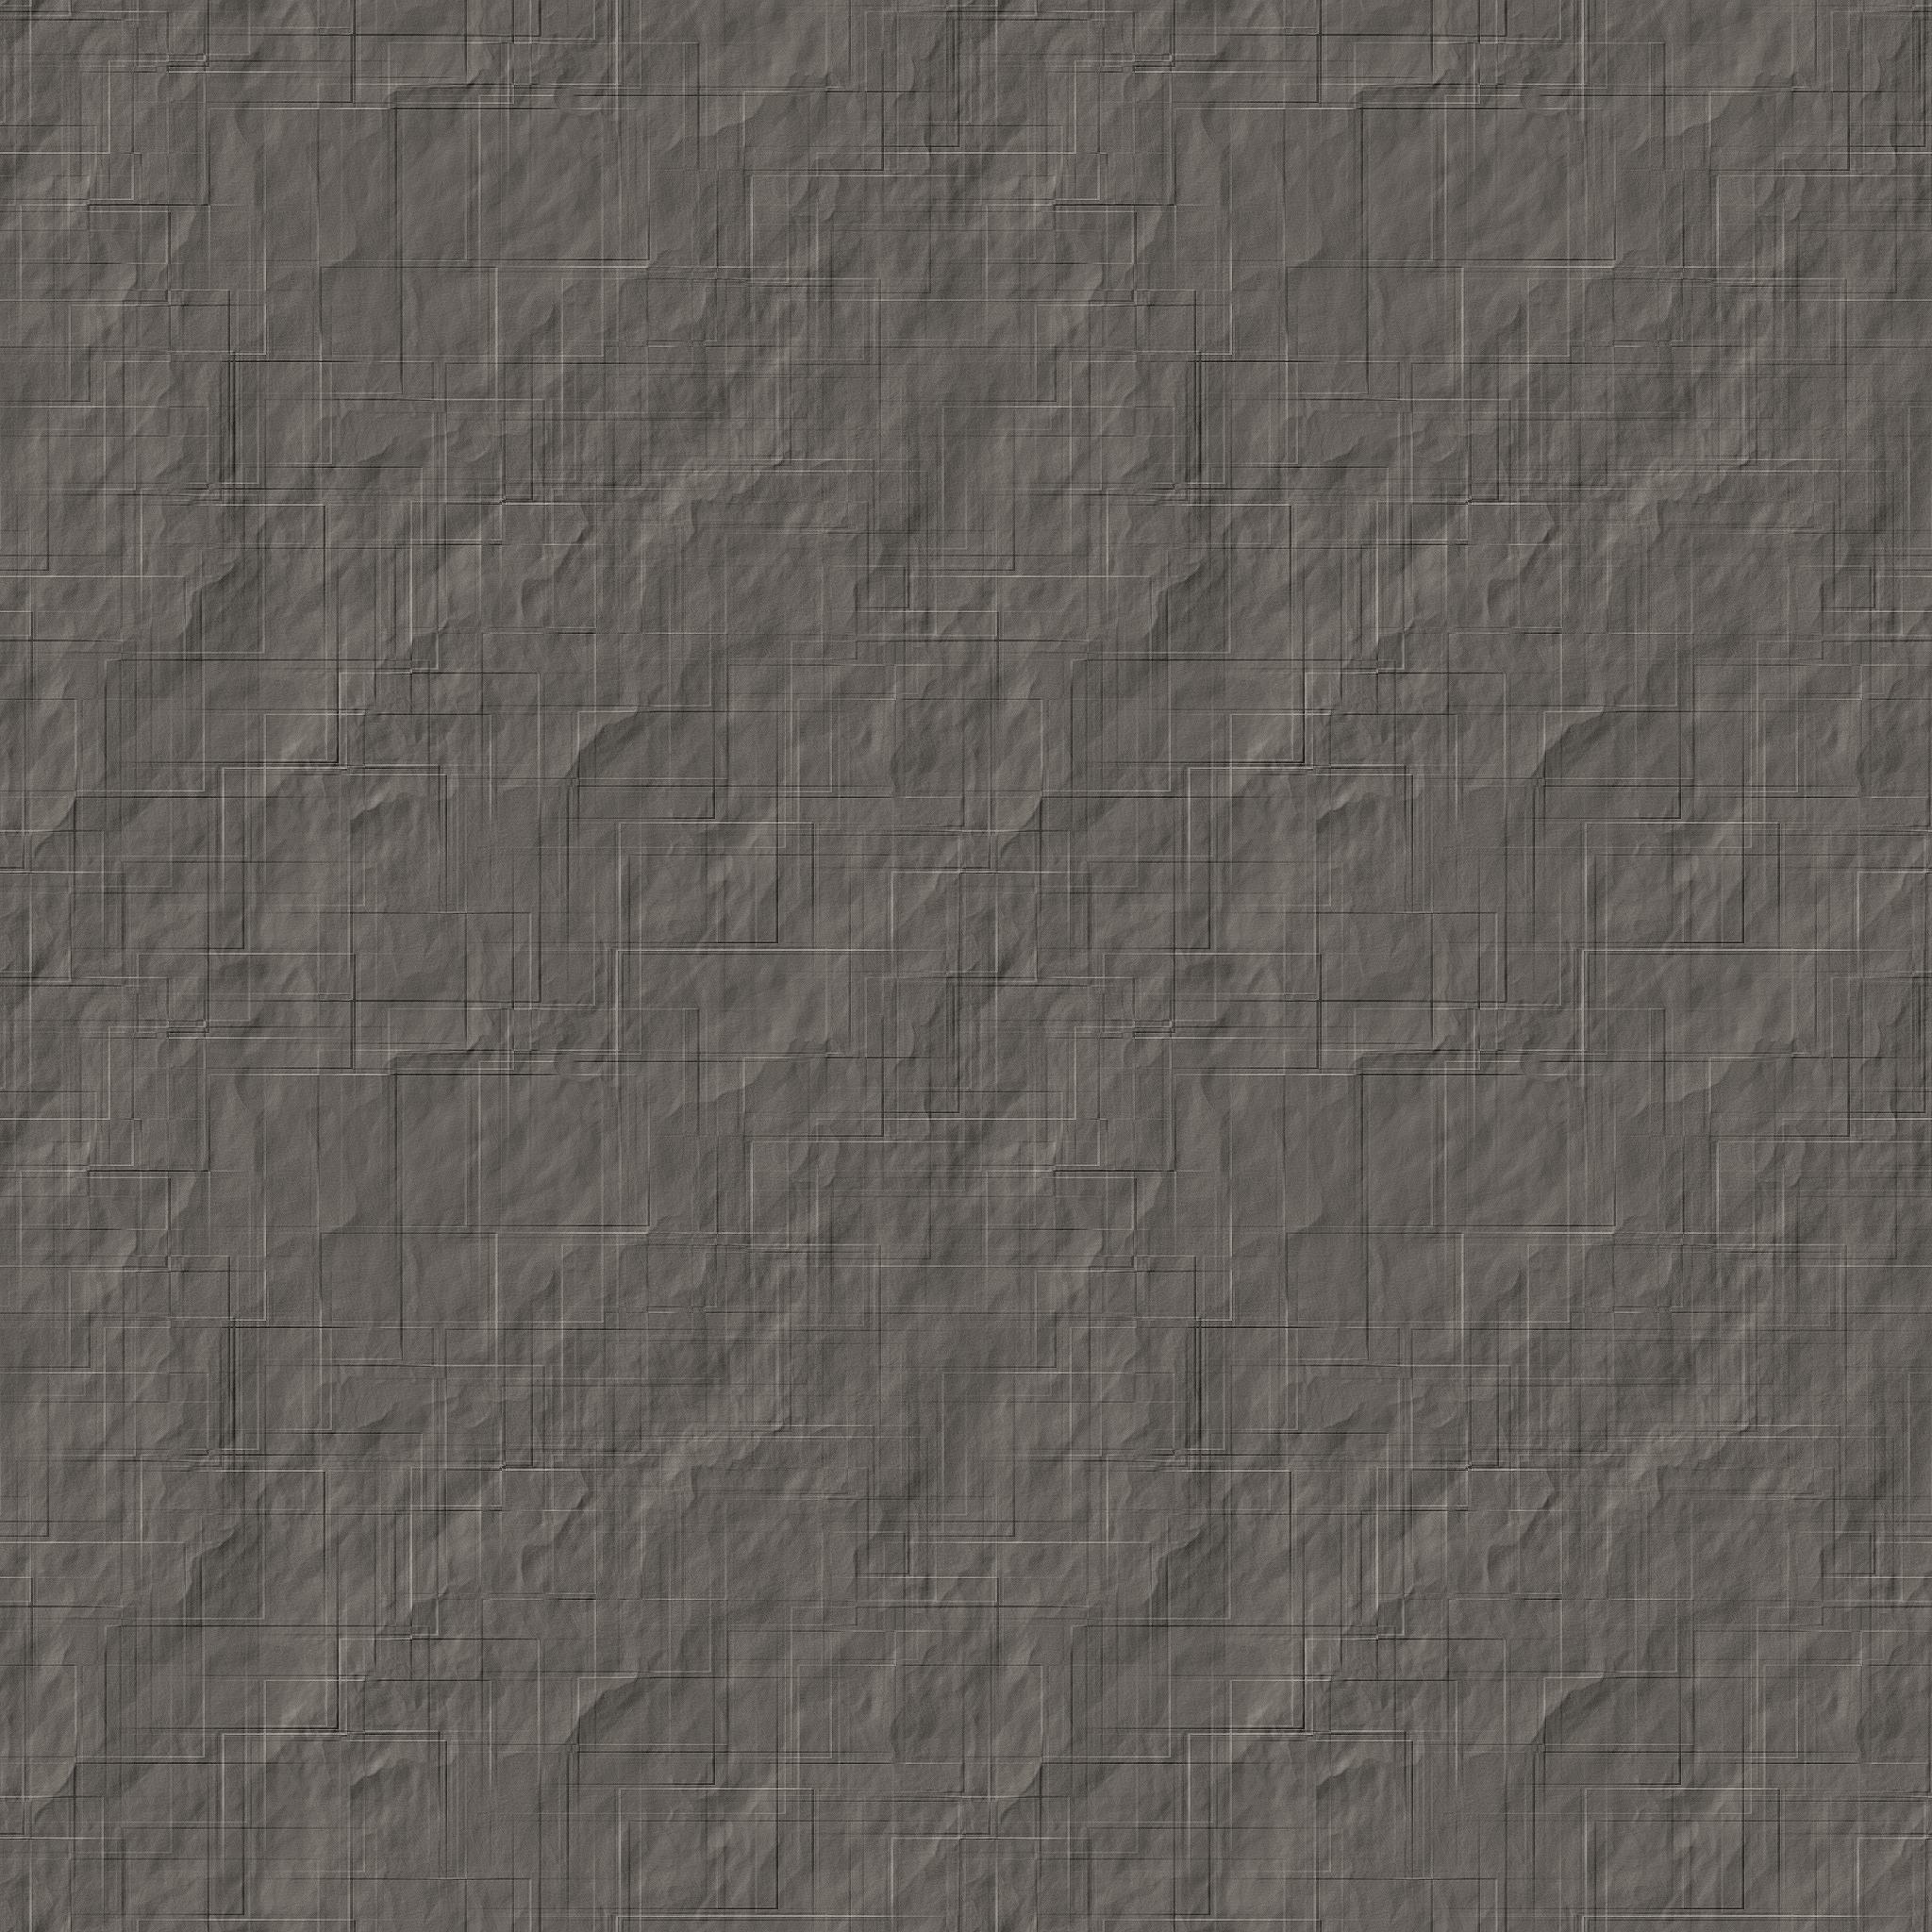 Seamless slate rock texture by fantasystock seamless slate rock texture by fantasystock